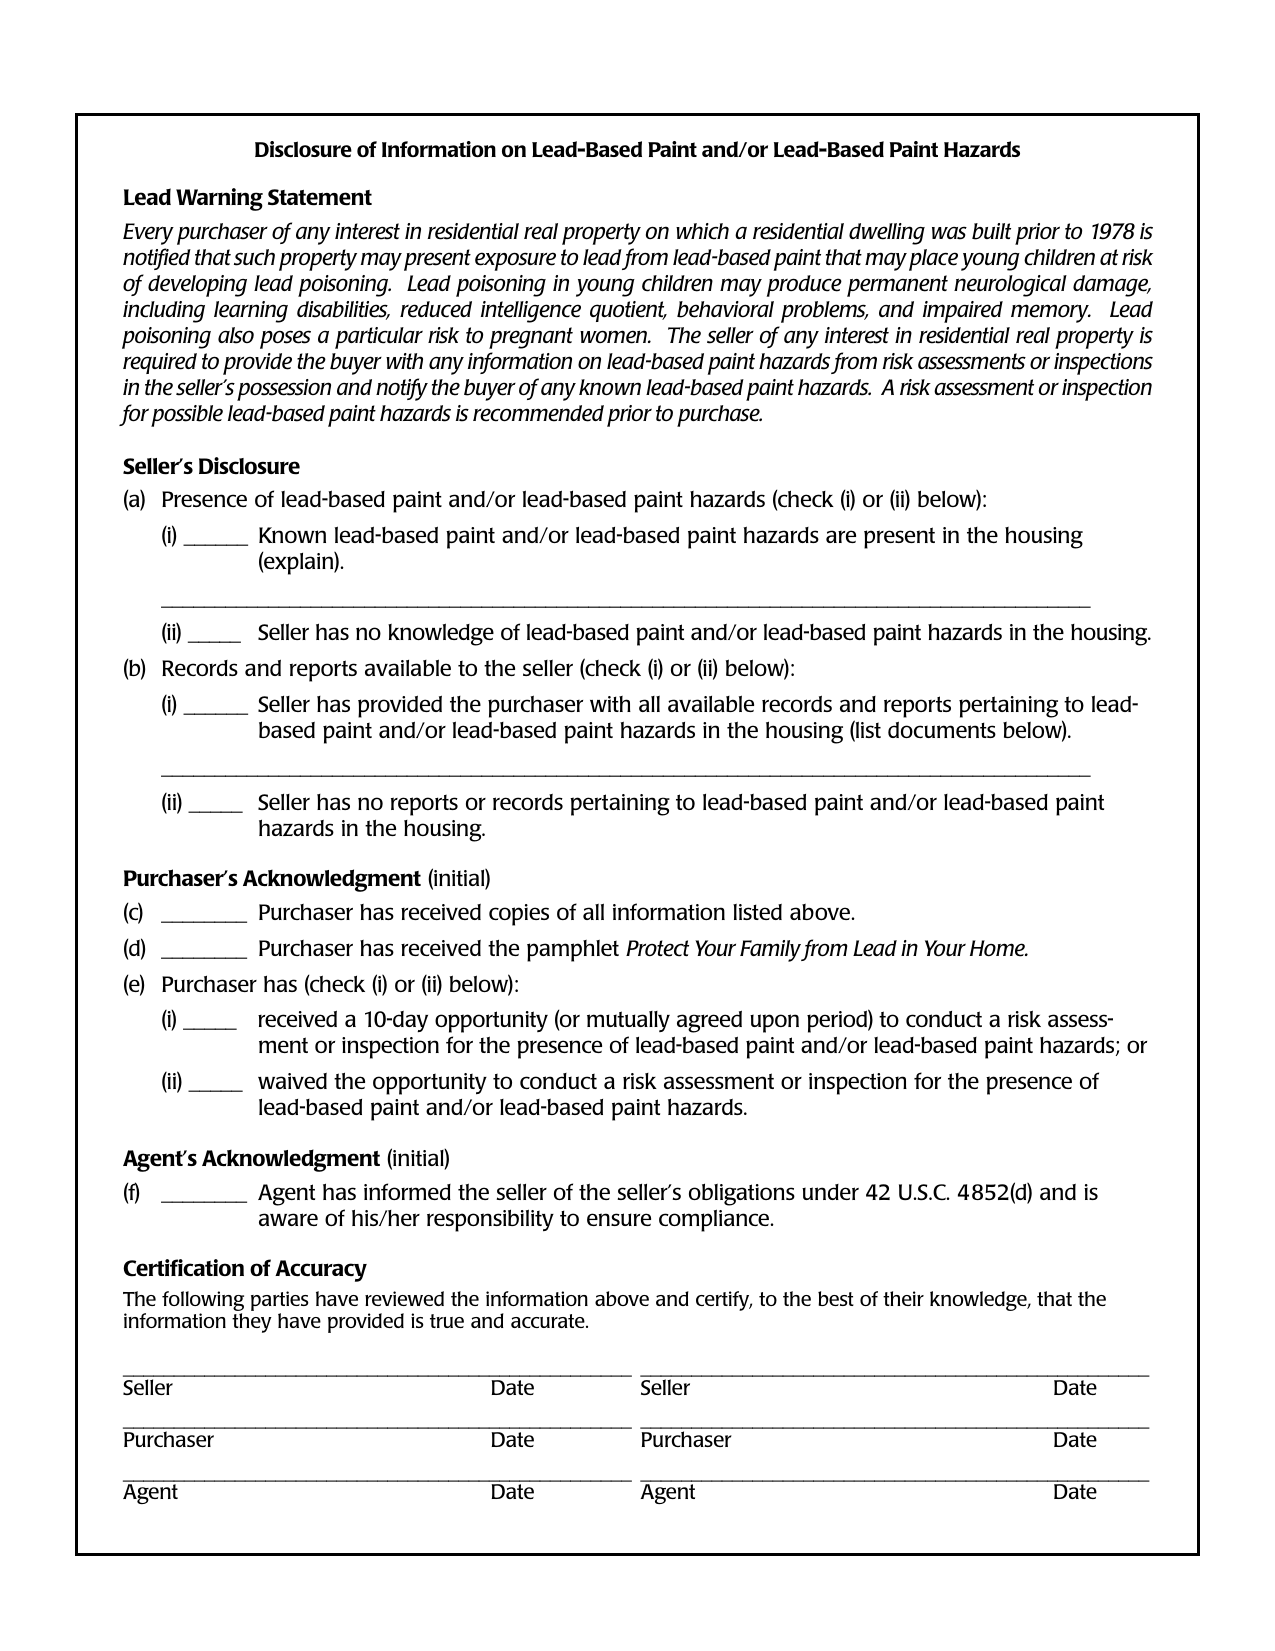 download hud disclosure of lead based paint  sale of